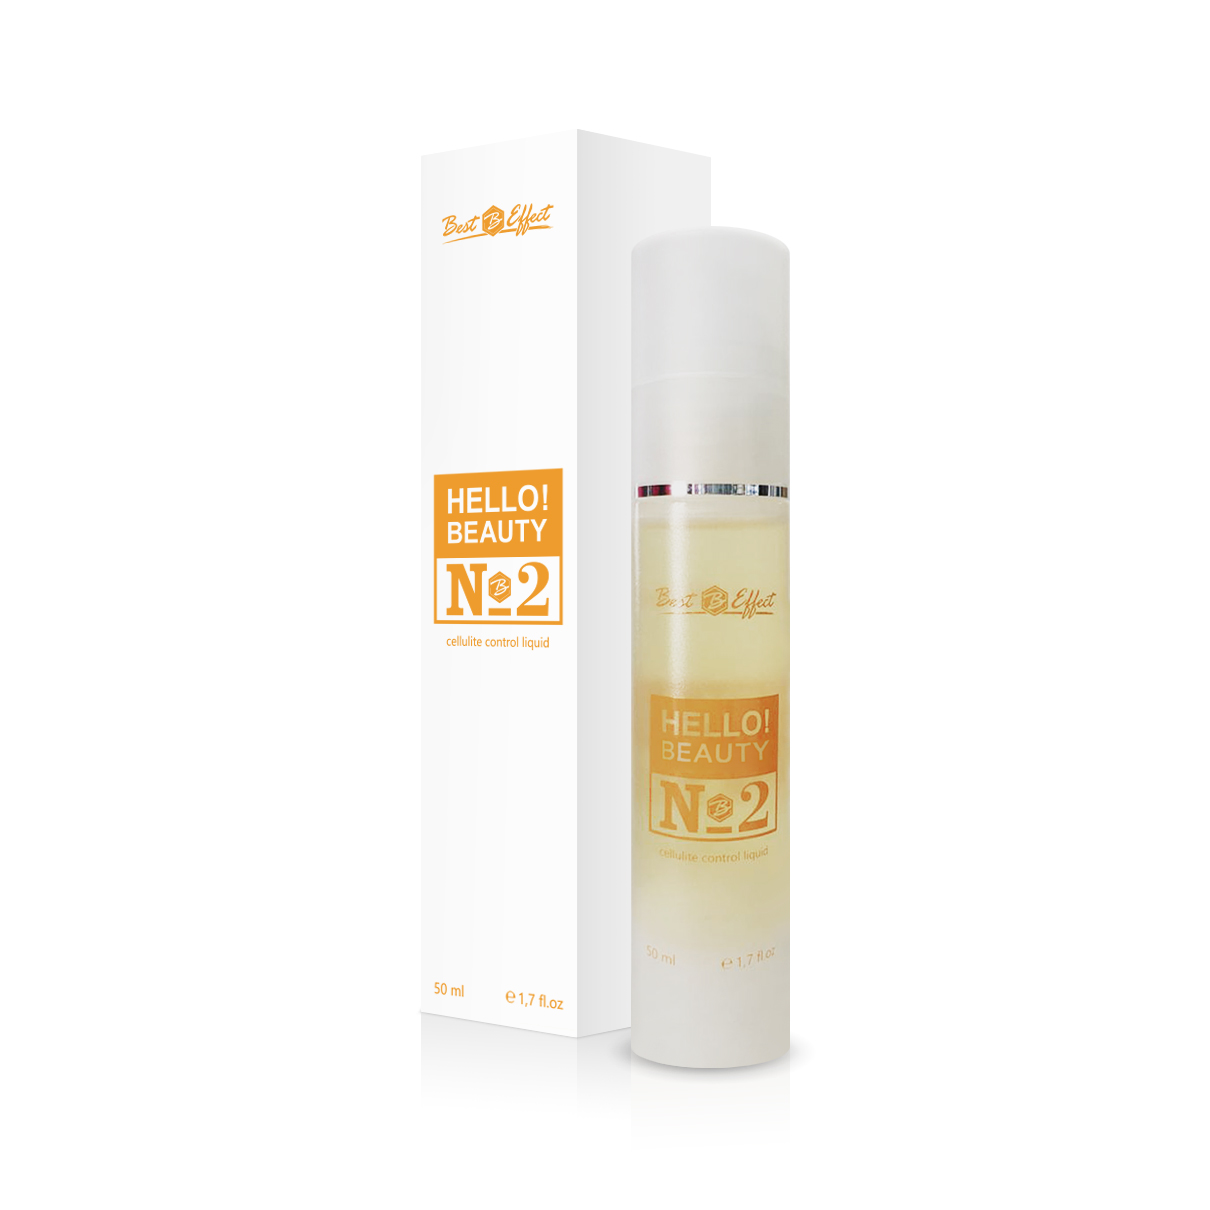 Hello!Beauty N2 cellulite control liquid